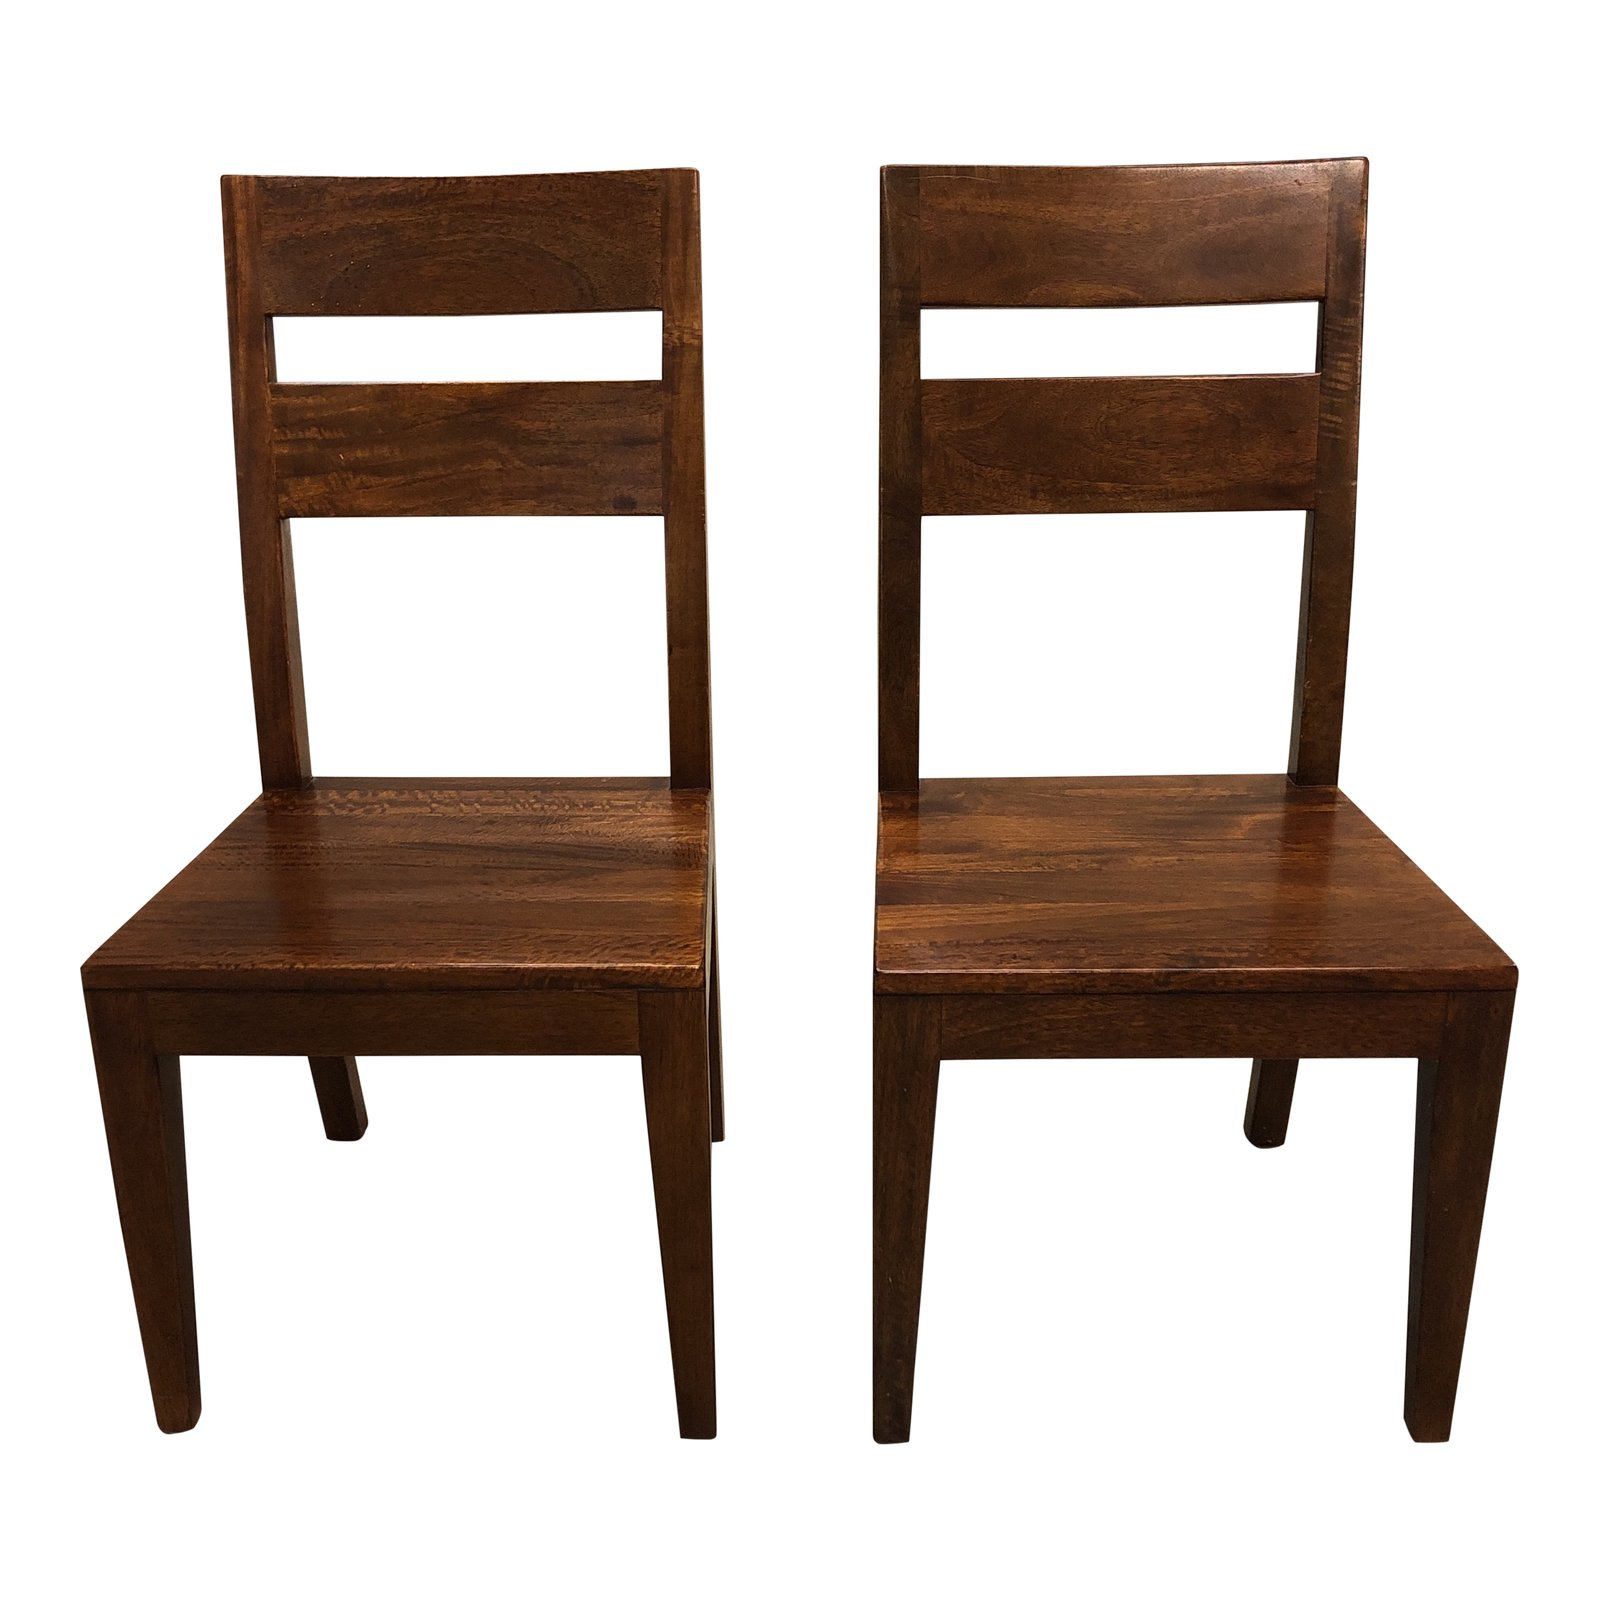 Crate And Barrel Dining Chairs: Pair Of Crate & Barrel Basque Honey Wood Dining Chairs